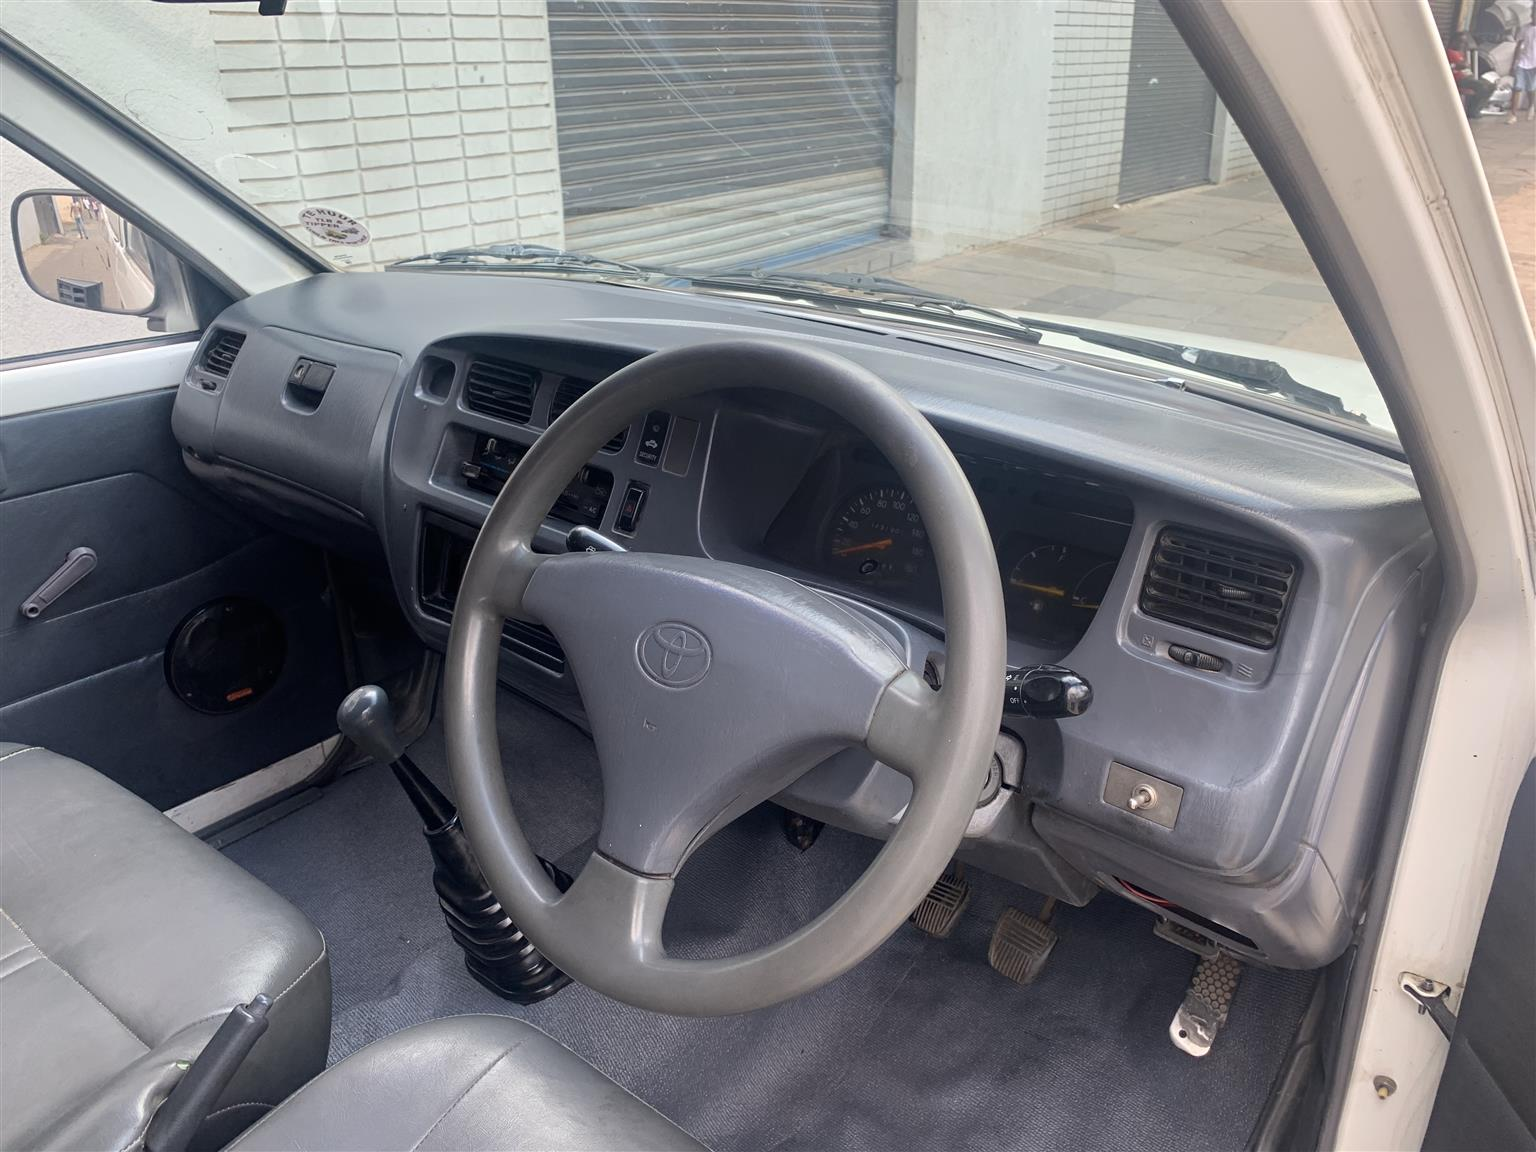 2003 Toyota Stallion 2.0 panel van